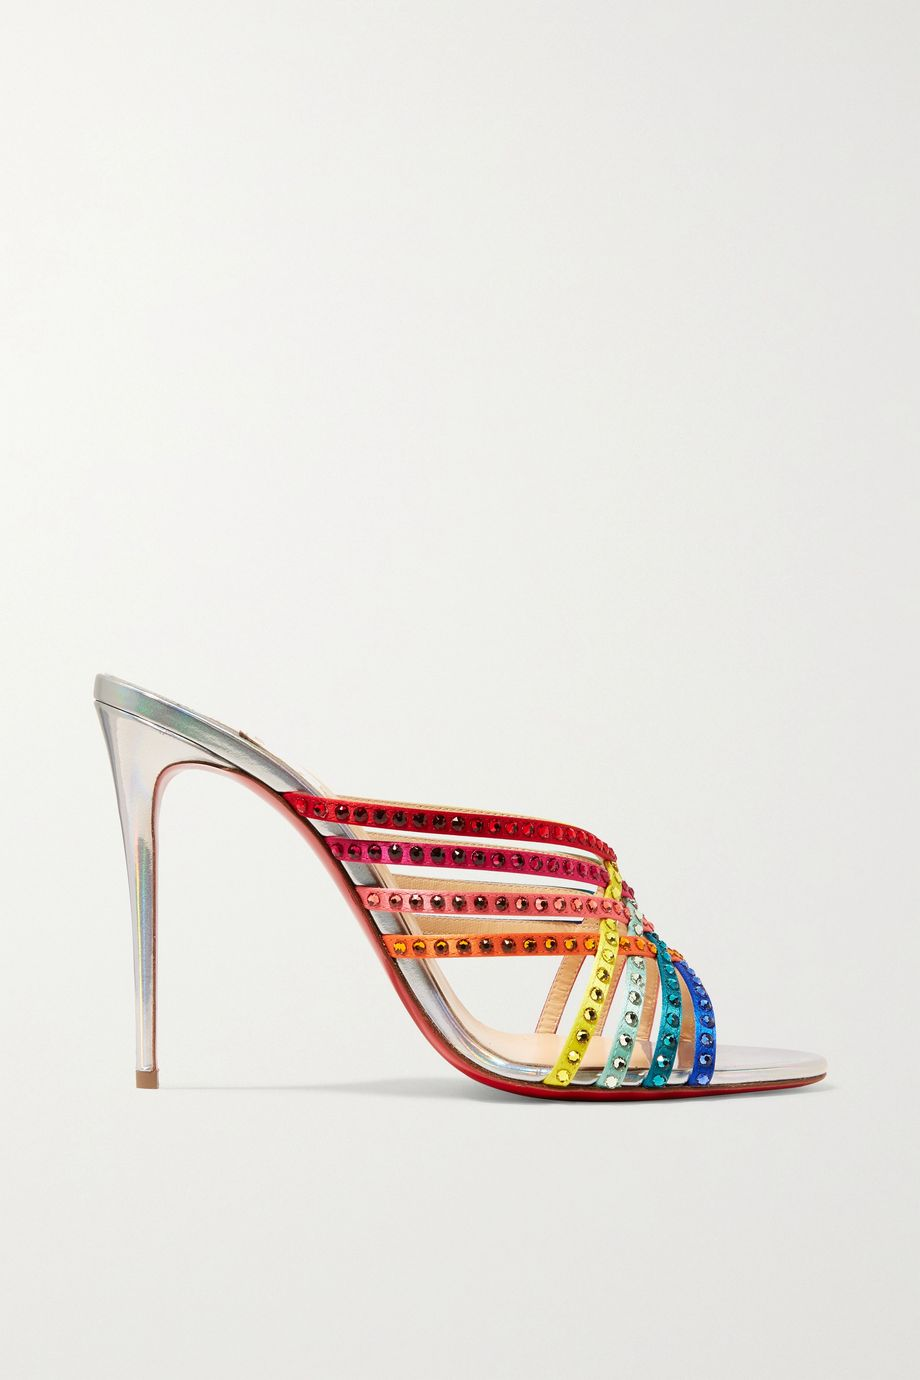 Christian Louboutin Marthastrass 100 embellished silk-satin and iridescent leather mules